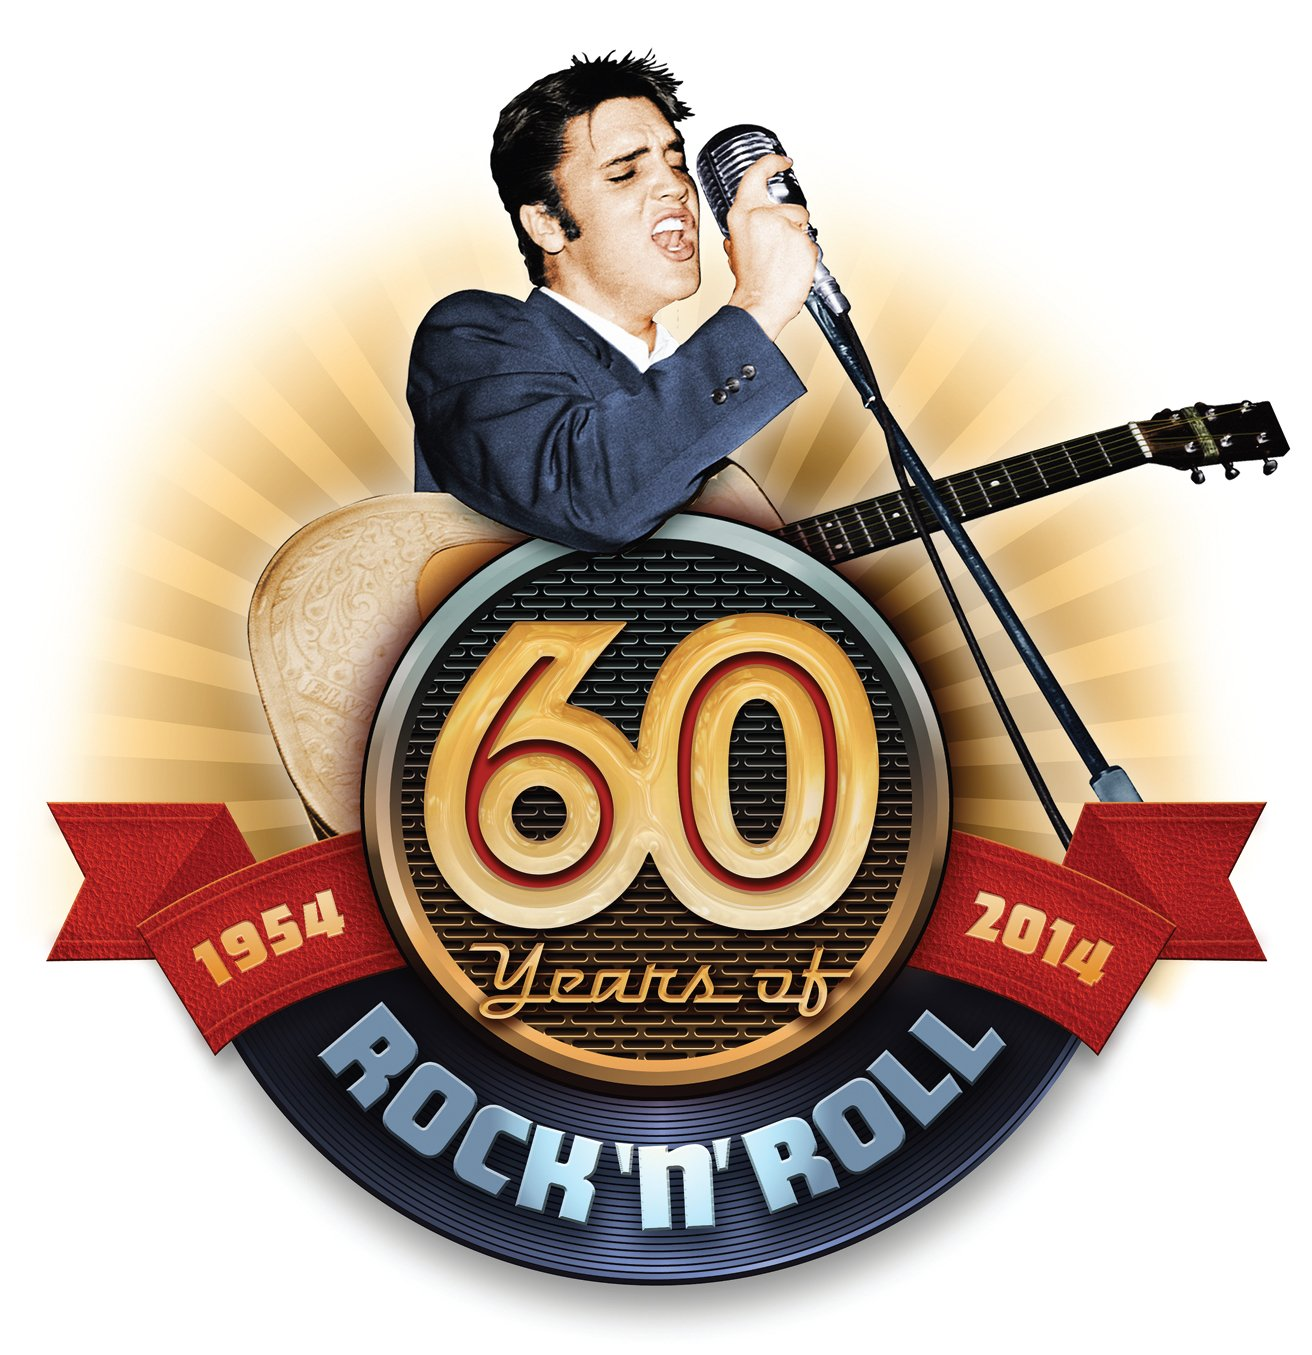 60 years of Rock and Roll Elvis Presley Logo Google image from  http://www.elvis.com/!userfiles/editor/images/60YearsLogo.jpg